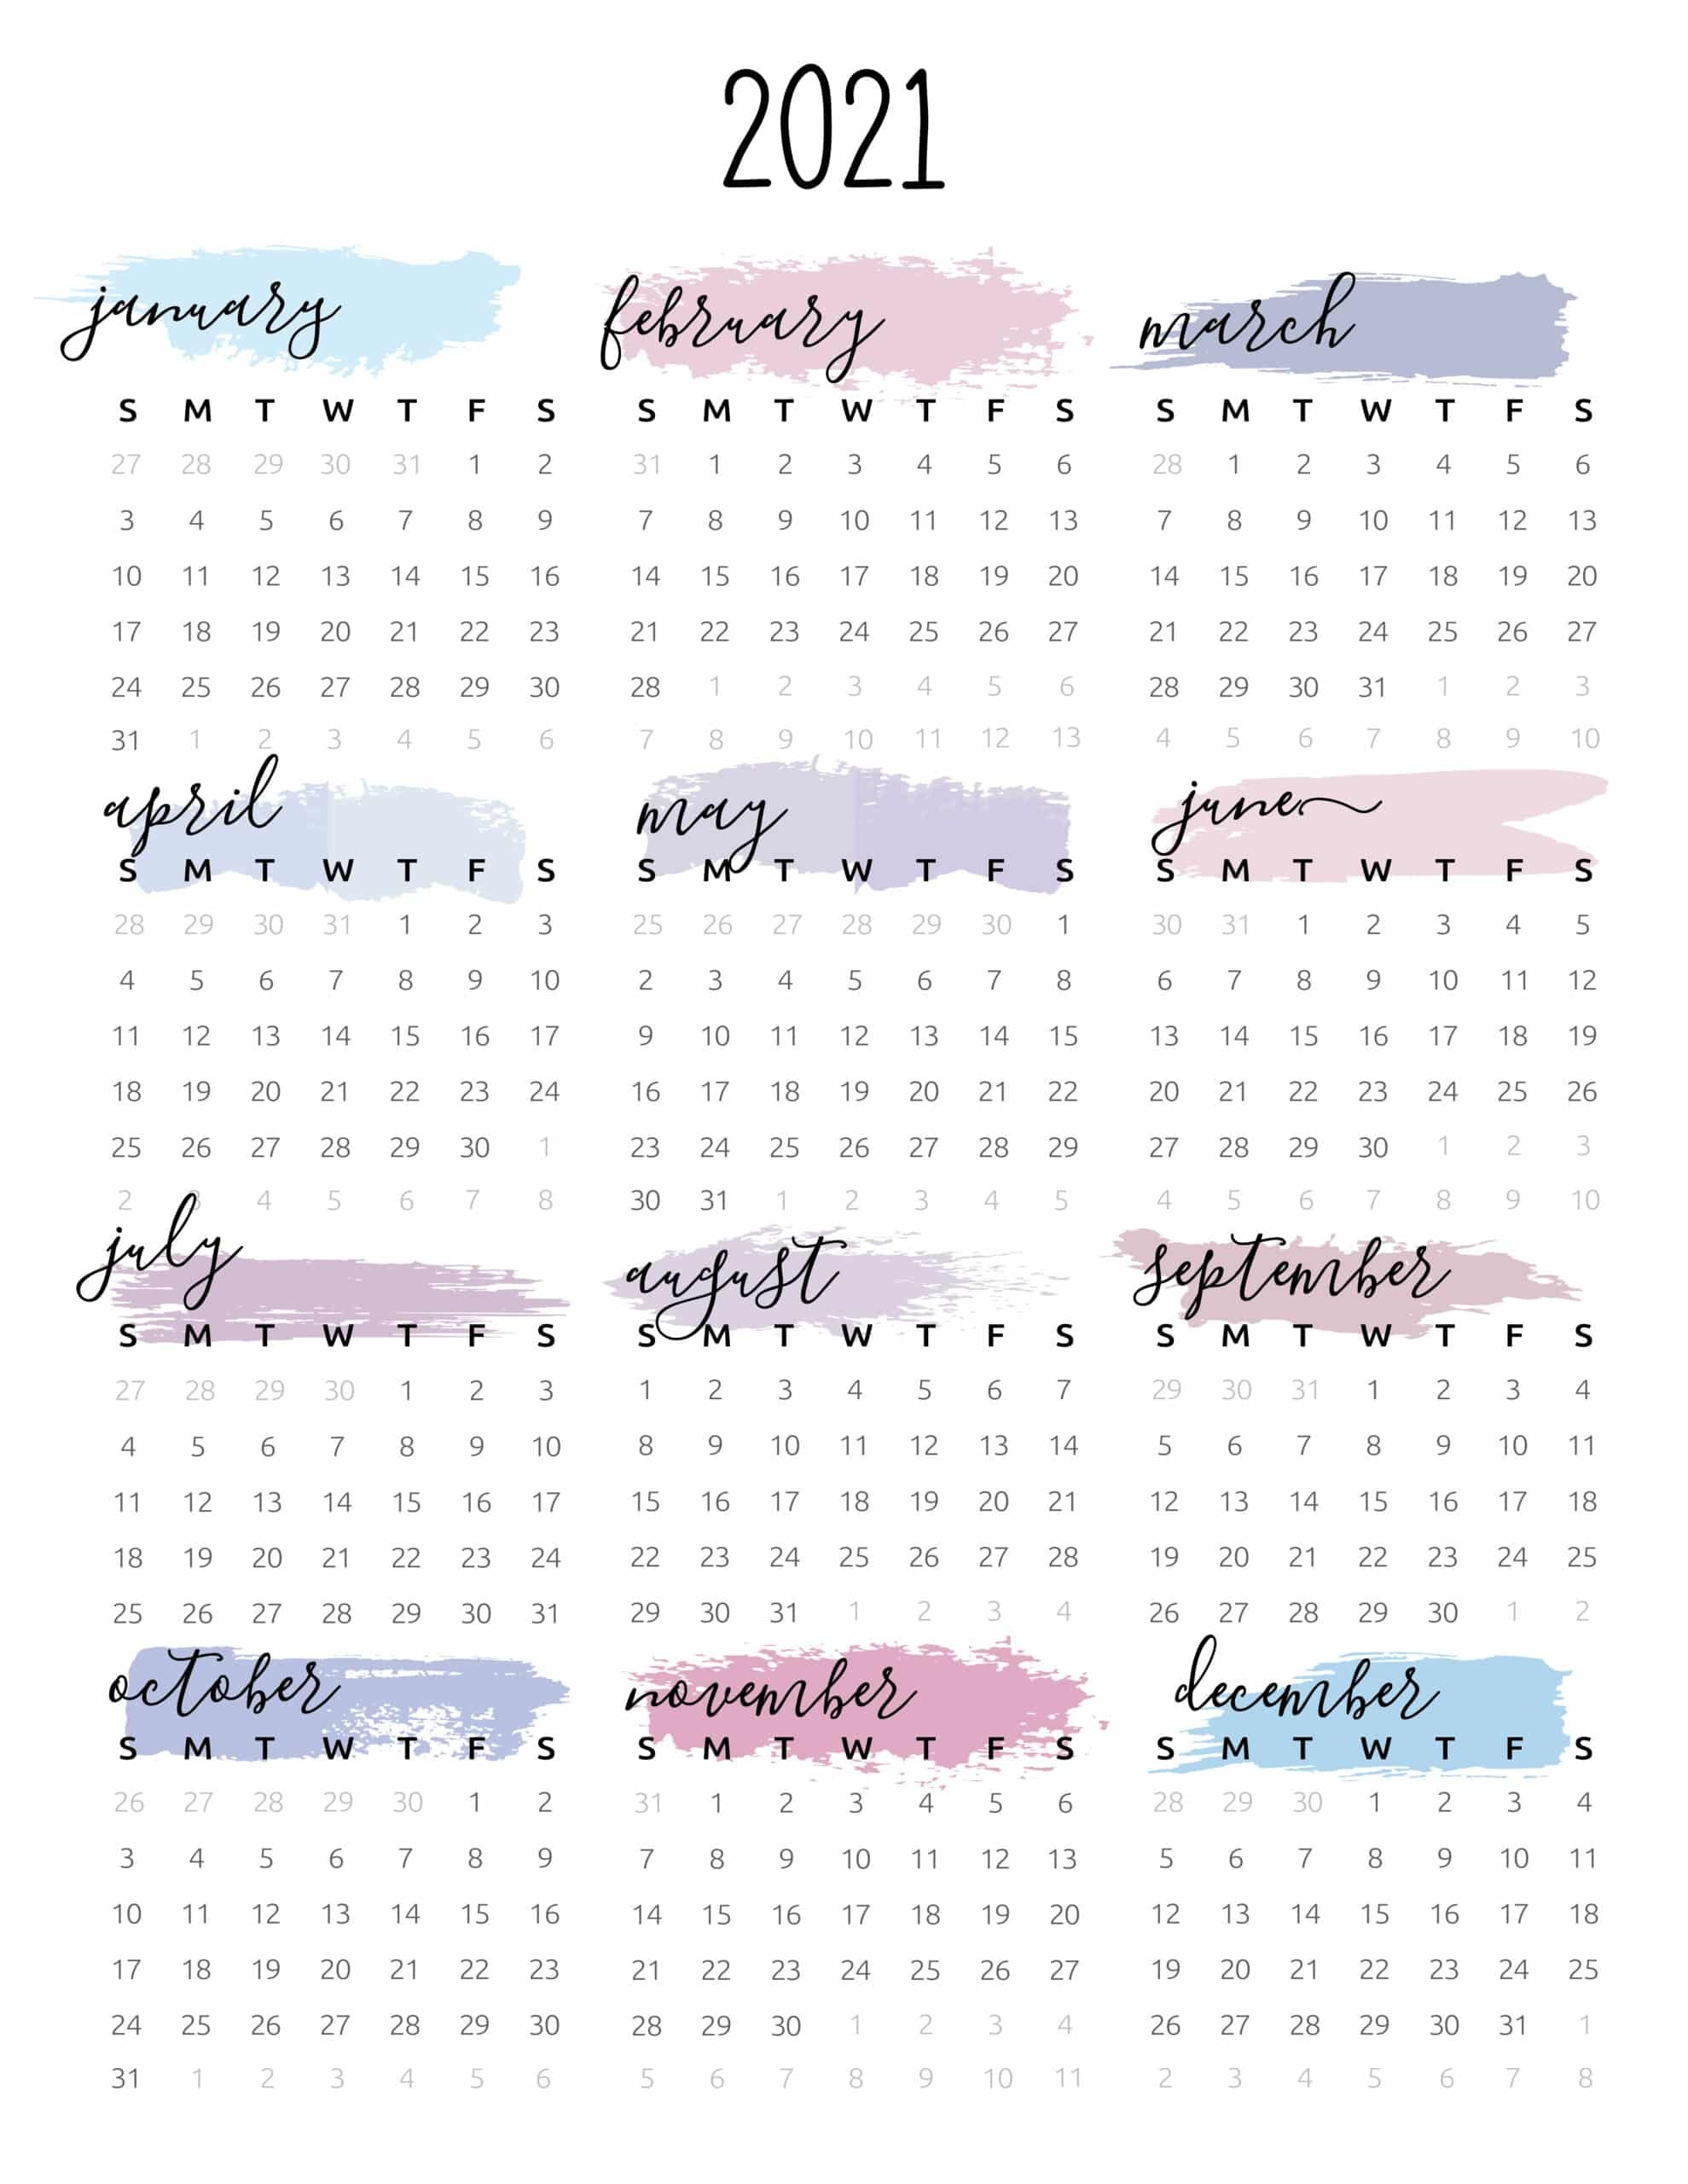 Watercolor One Page 2021 Calendar - World Of Printables inside One Page2021 Calendar Printable Images